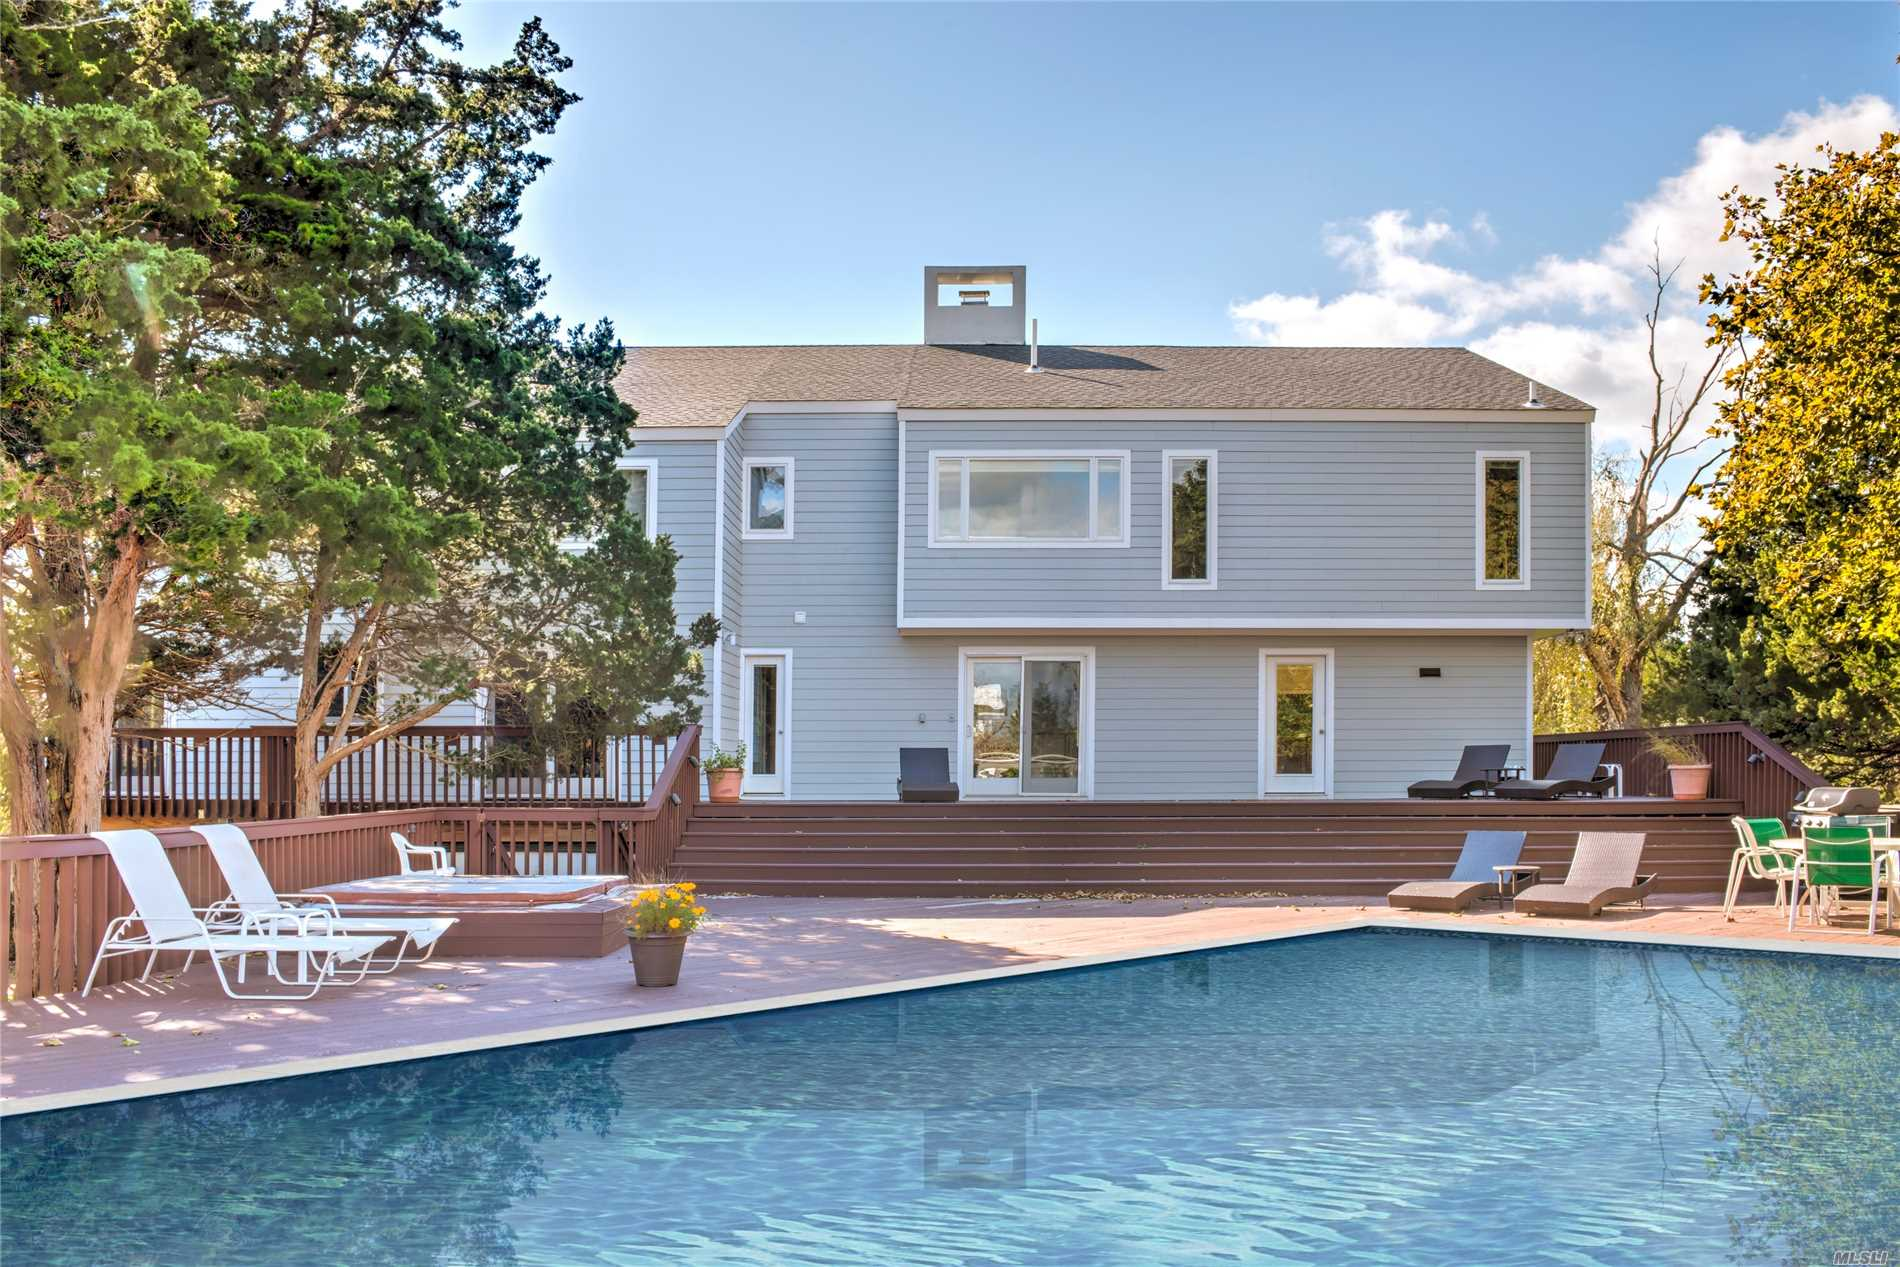 Spend All Or A Portion Of Summer 2019 In This Spacious Home. Located Just Moments From The Beach And Main Street Whb, This 5 Bedroom 4 Bath Home Has Everything You Could Ask For In A Summer Rental. Recently Remodeled Eat In Kitchen Opens To Large Dining Area And Great Room. Wrap Around Decking Provides A Multitude Of Spaces To Dine And Lounge Through The Warmer Months. Heated Pool And Tennis Offer The Classic Hamptons Summer Pastimes. Please Note That The Pool Has Been Digitally Opened.